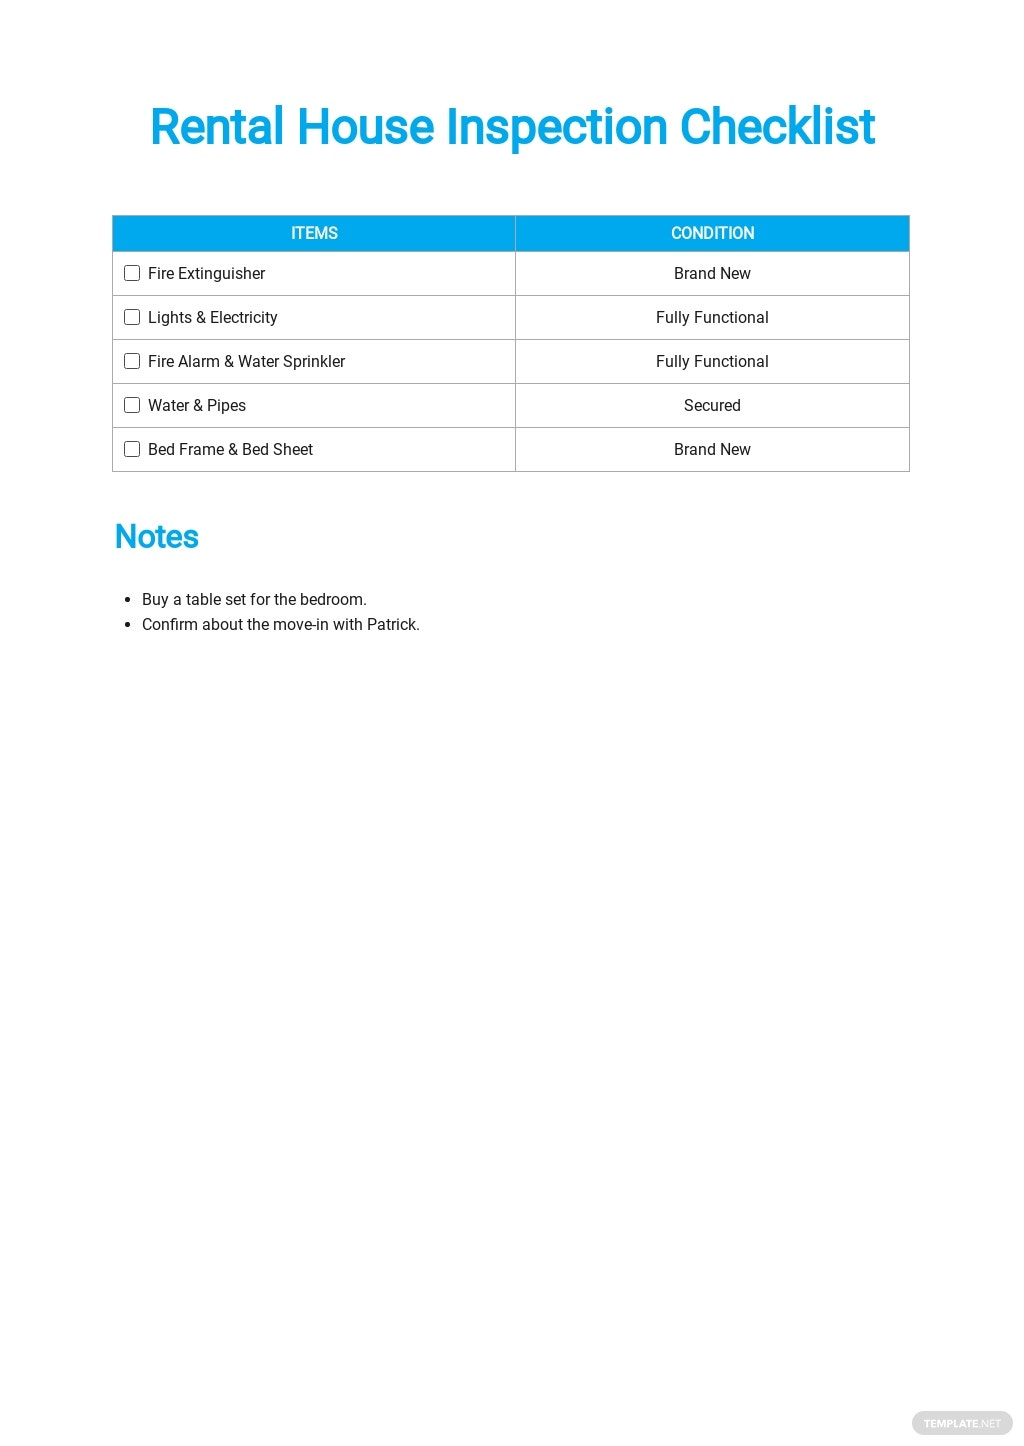 Rental House Inspection Checklist Template